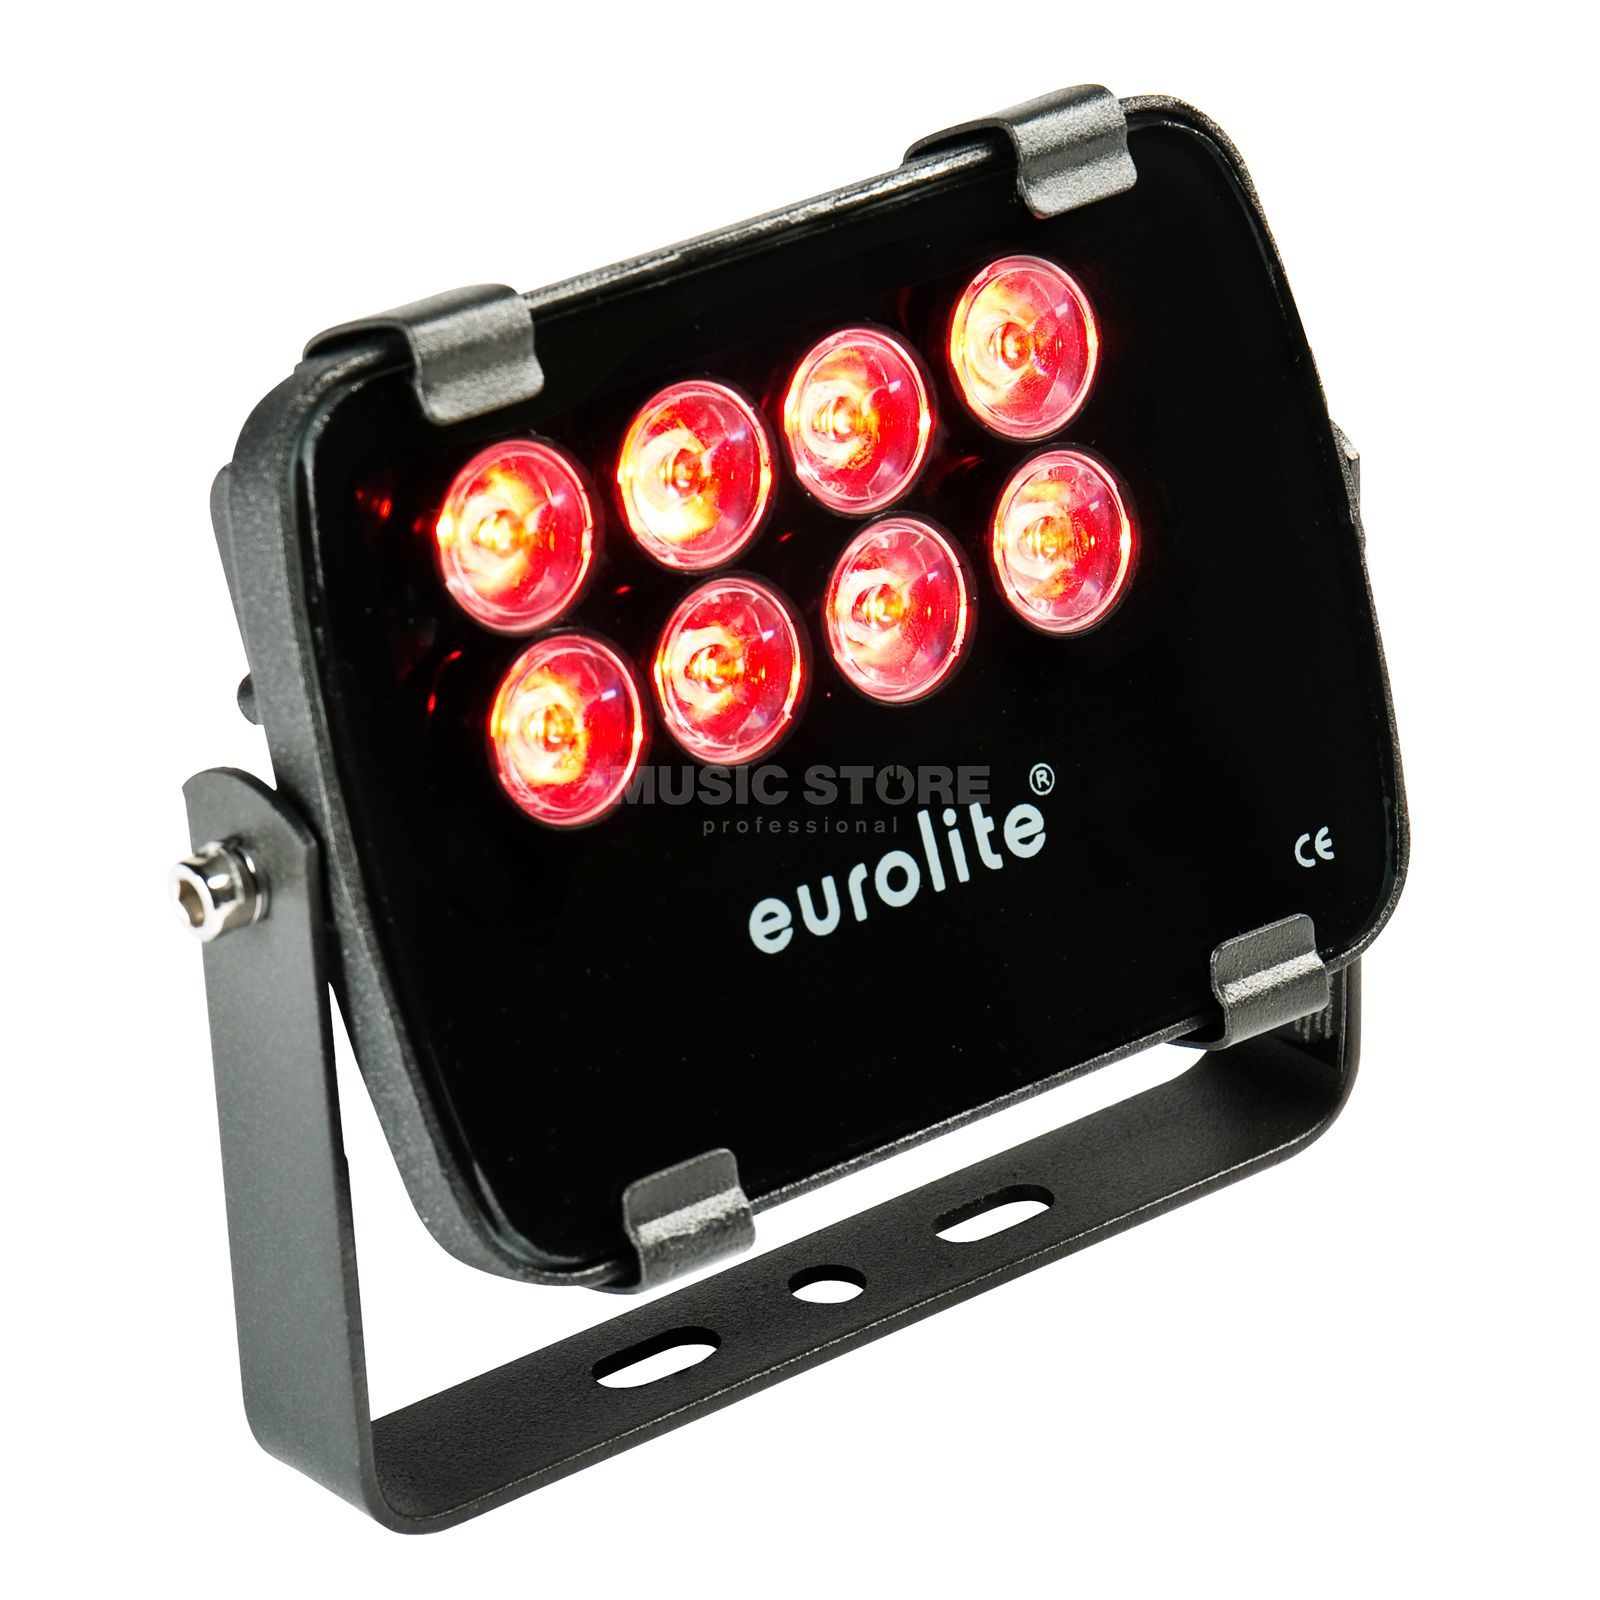 Eurolite LED IP FL-8 rot 30° IP 56, 8x1W Garden Light Zdjęcie produktu